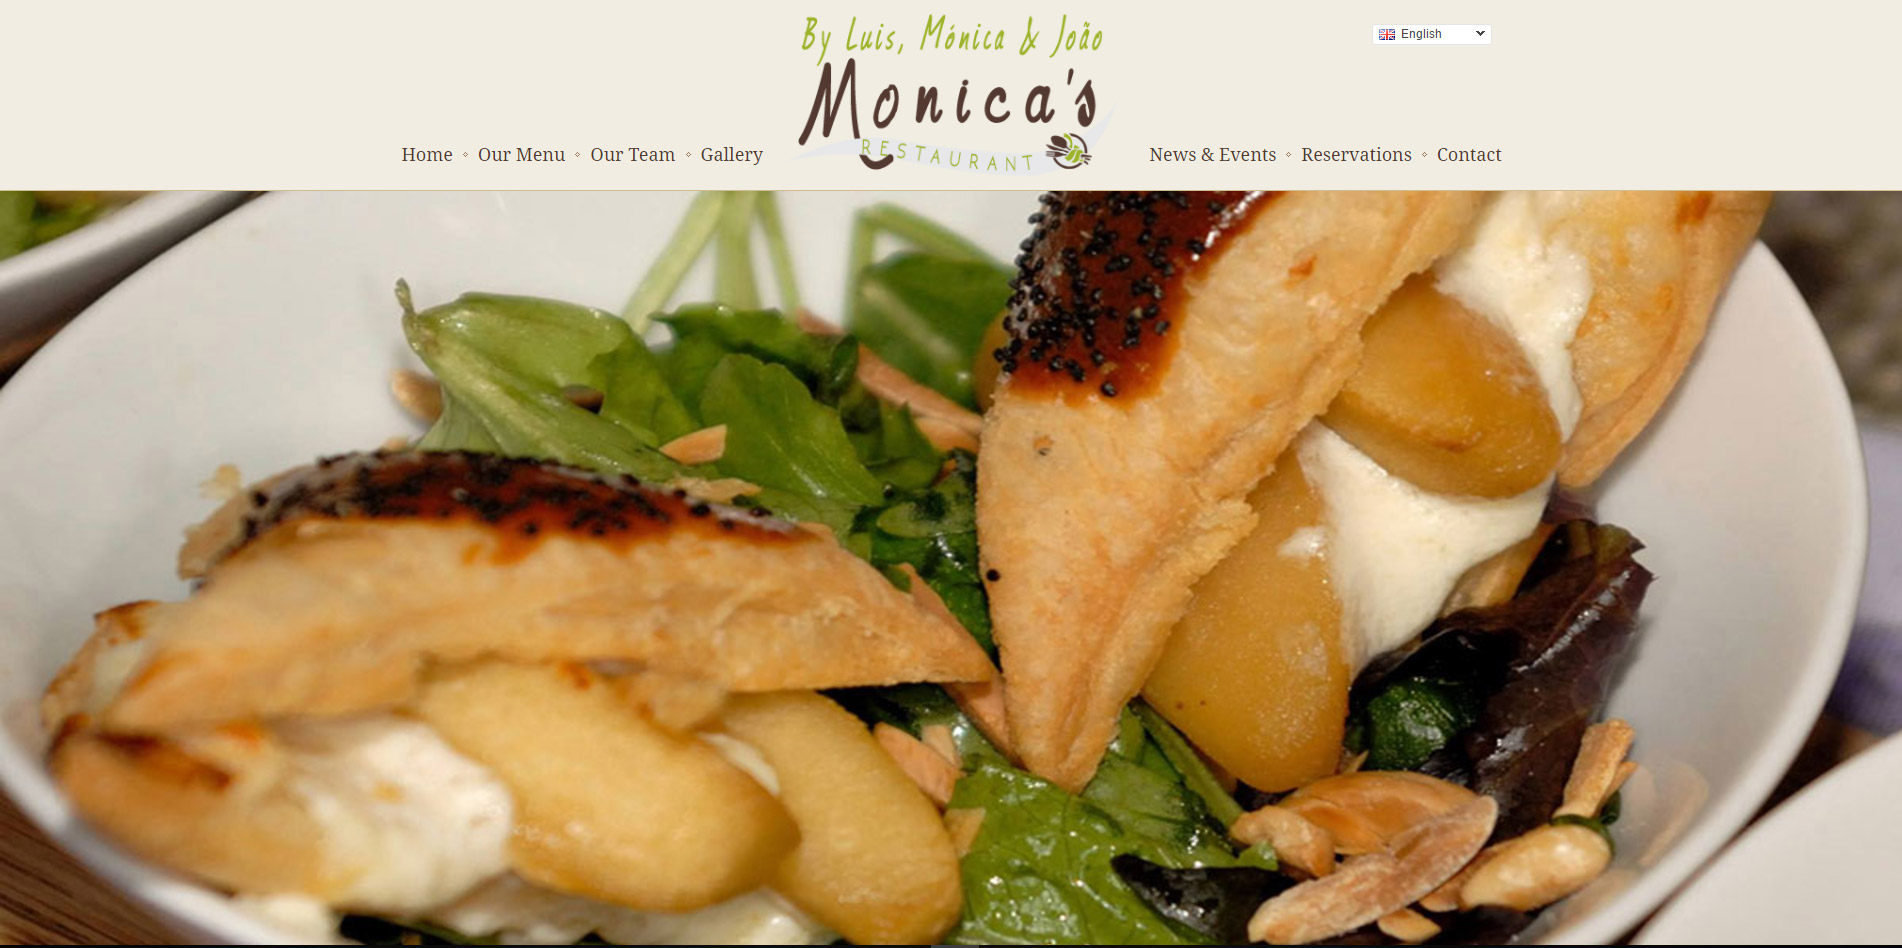 home page website design for restaurant located in the Algarve